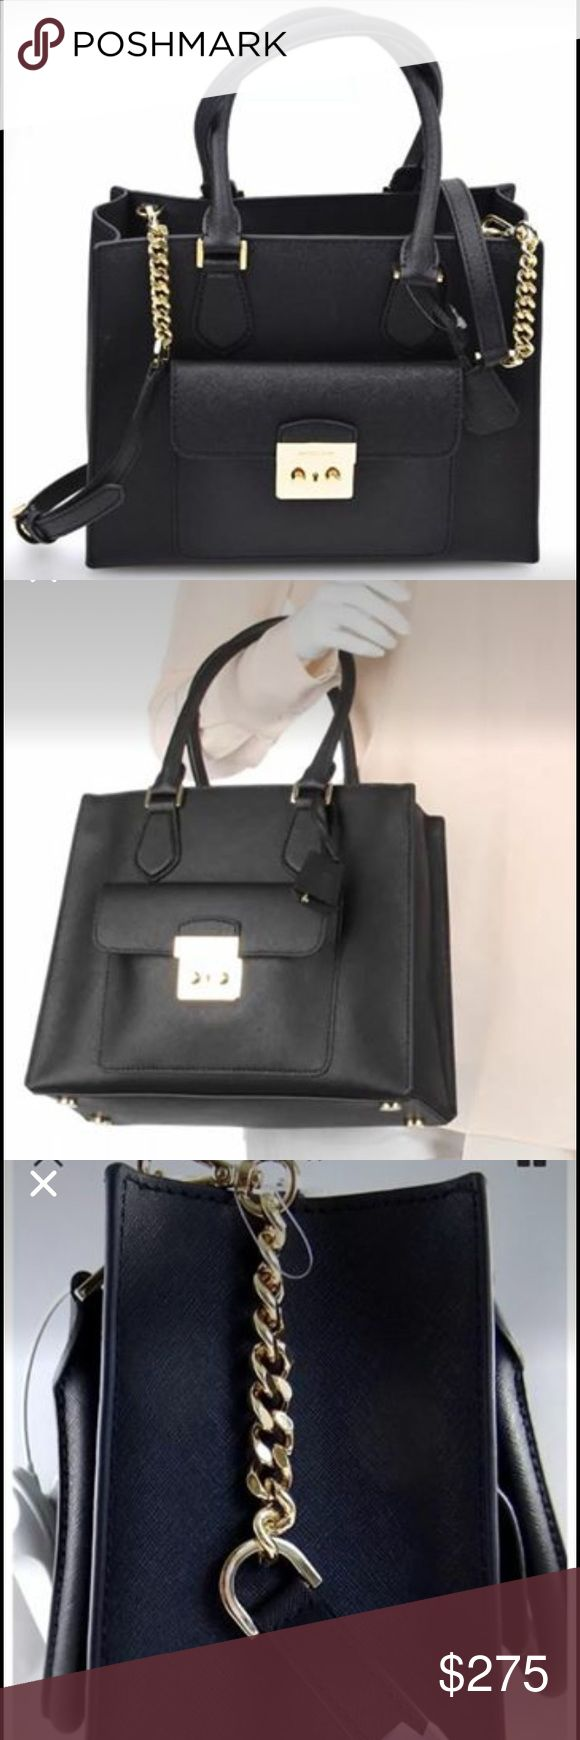 "Michael Kors Medium East/West Black Bag NWT Michael Kors Medium East West Brid Tote in all leather. Color Black  Retails for over 380+  Approximate measurements :  Medium sized bag; 12""W x 9-1/2""H x 4-3/4""D  Interior features lining, 1 zip pocket, 3 open pockets, 1 cellphone pocket and 1 clip  6""L double handles; 21-1/4""L to 23-3/4""L adjustable and detachable chain-detail strap  Zip closure  Exterior features gold-tone hardware, 1 pushlock gusset front pocket and charm  Bag converts from…"